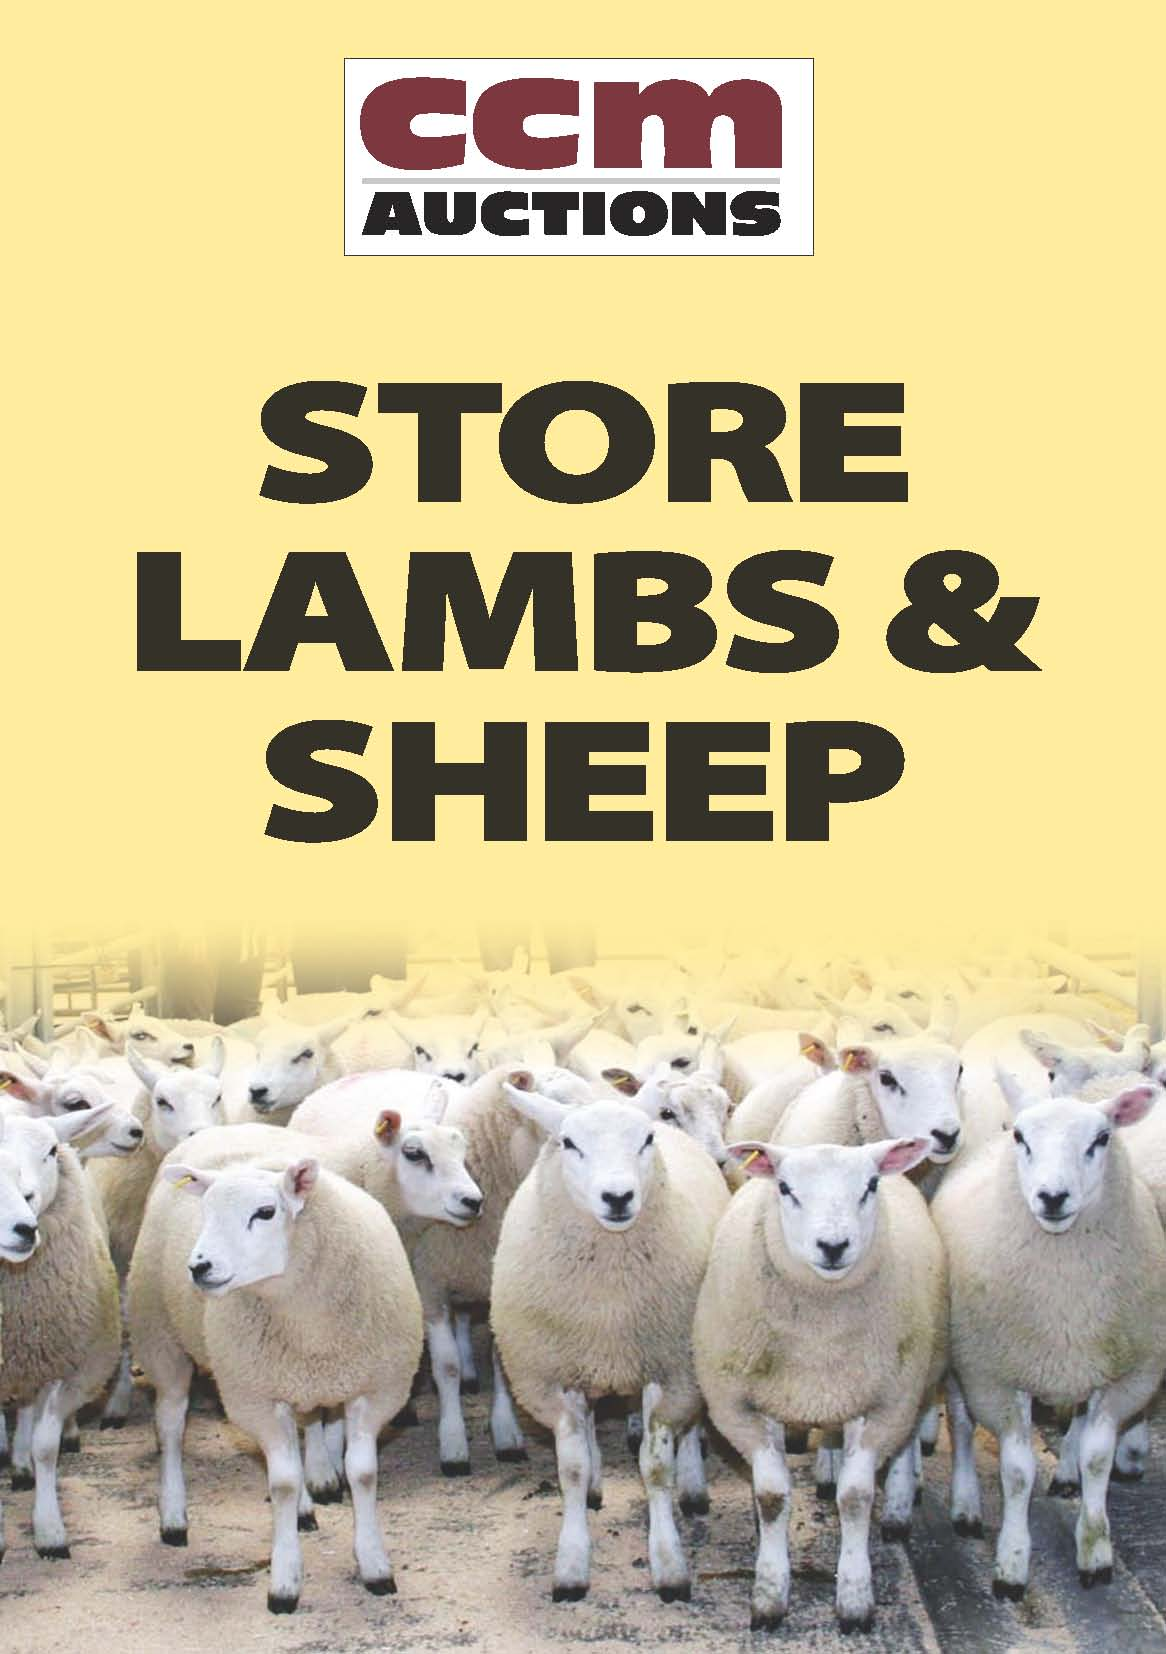 STORE LAMBS - WEDNESDAY 25TH JANUARY 2017